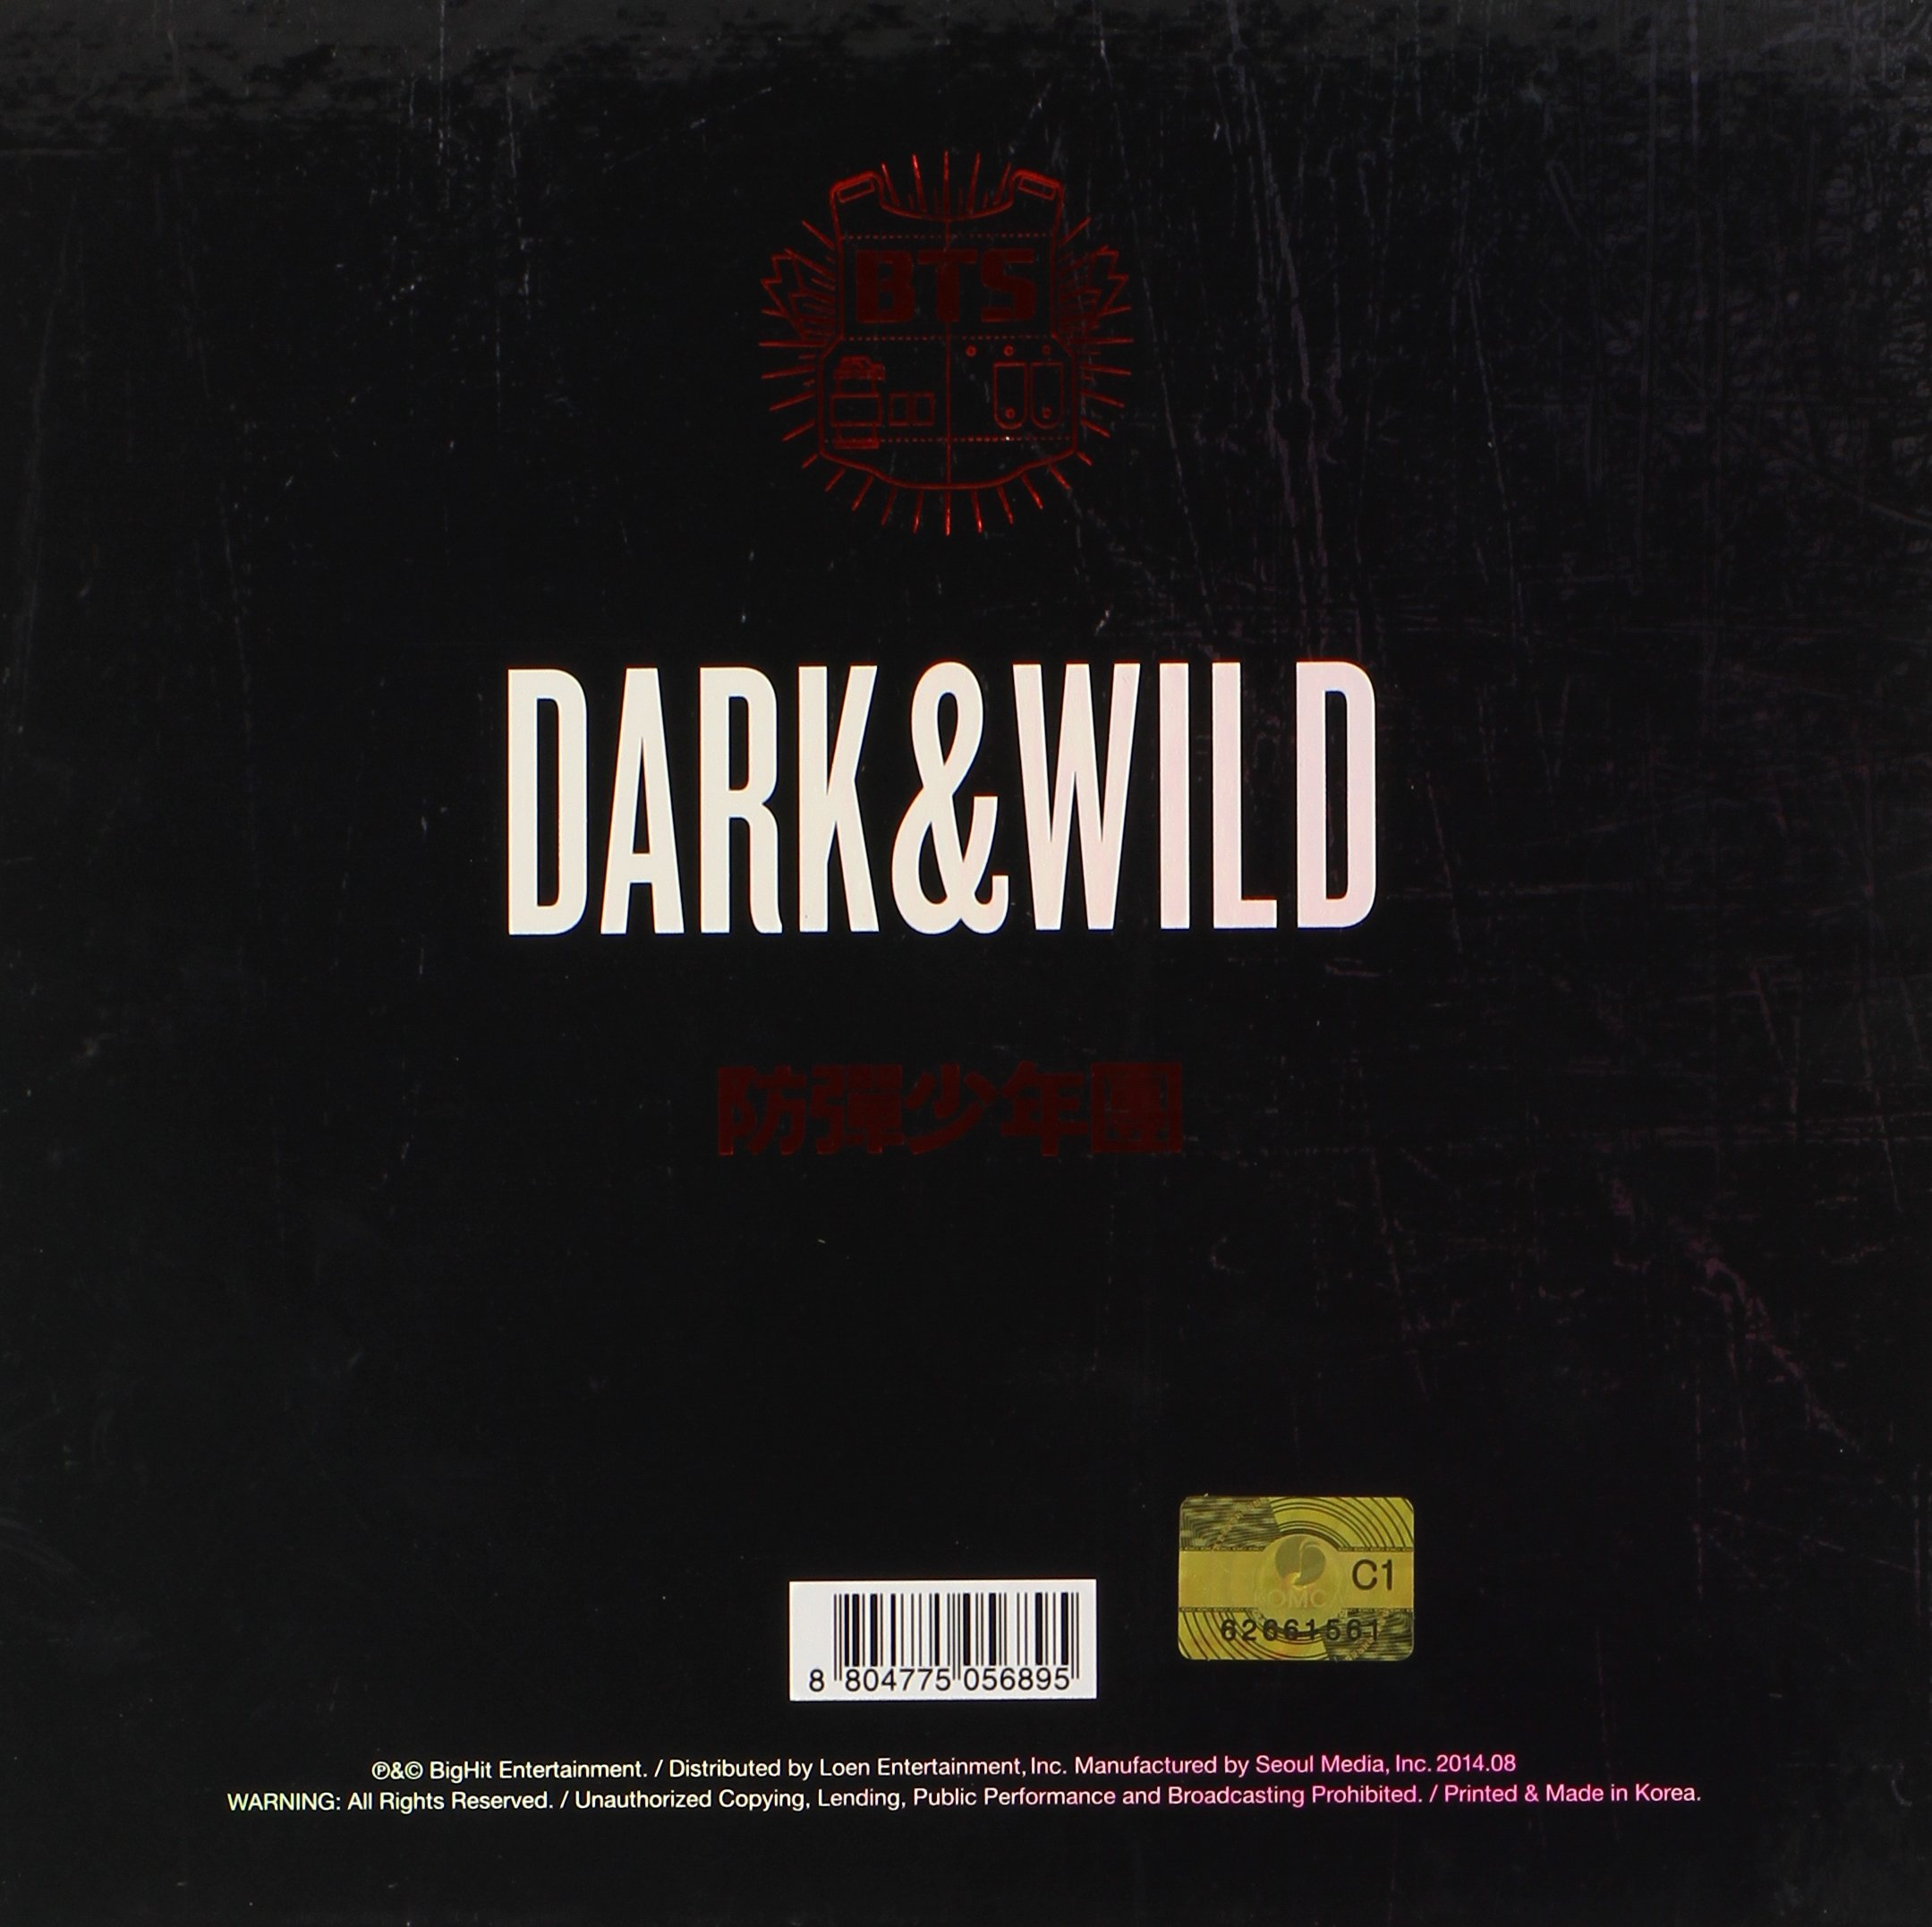 BTS - Vol. 1 [DARK&WILD] by Bighit entertainment